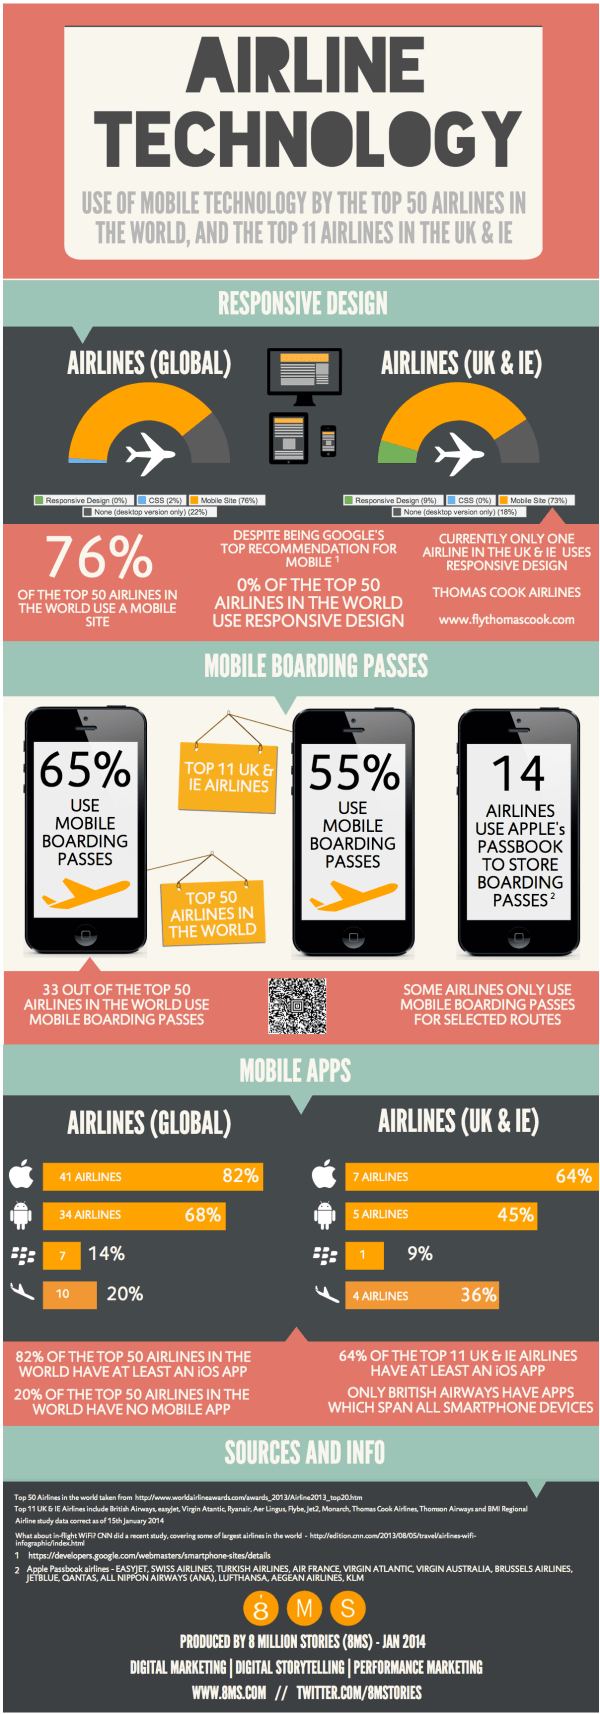 AirlinemobiletechnologyINFOGRAPHIC8MSpng. 1208 x 3451.Animal Represents Chinese New Year 2007